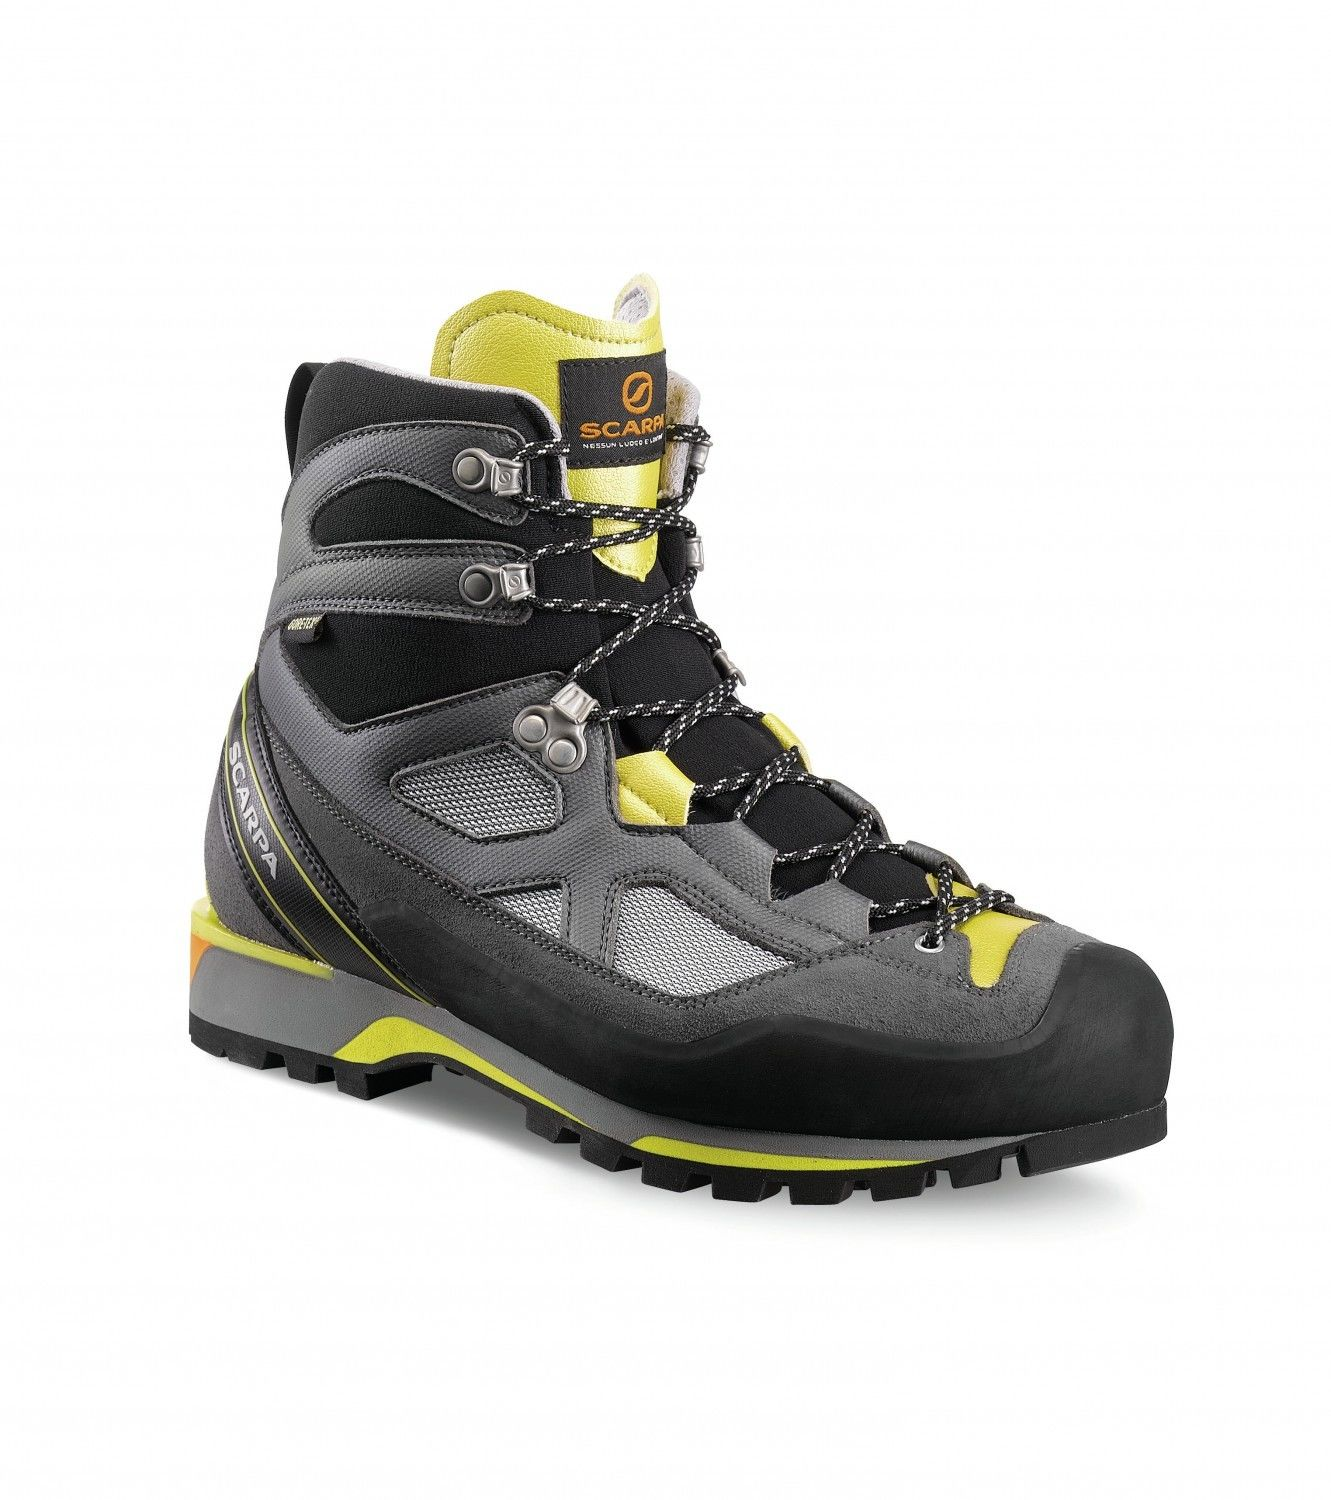 Scarpa Rebel Lite Gtx® Grau, Male Gore-Tex® EU 43.5 -Farbe Gray -Lemon, 43.5